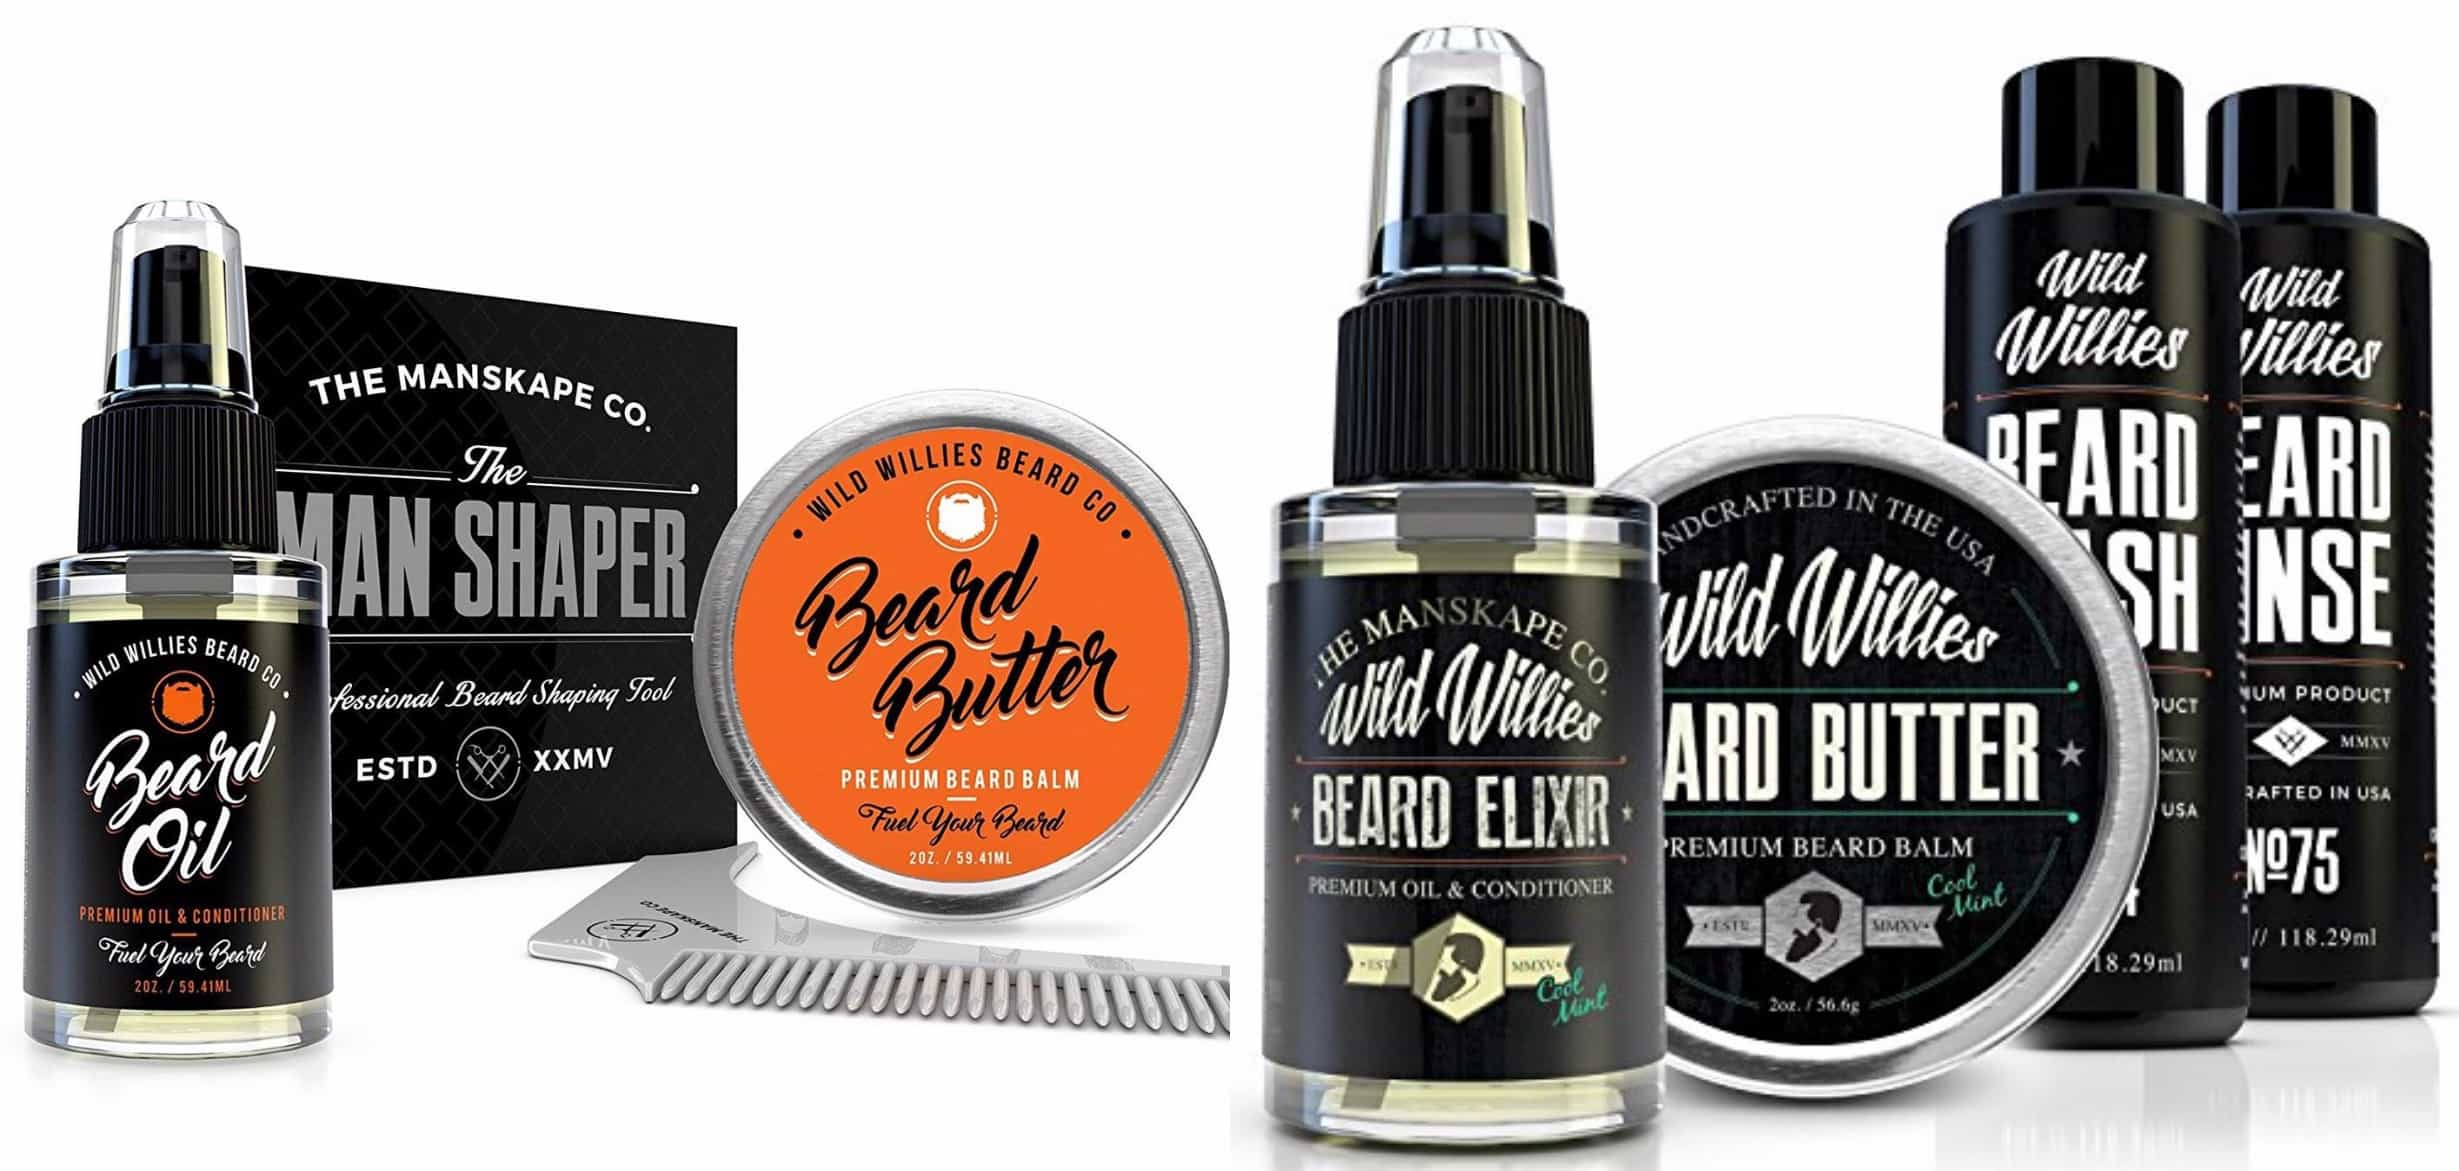 wild willies beard oil photo - 1